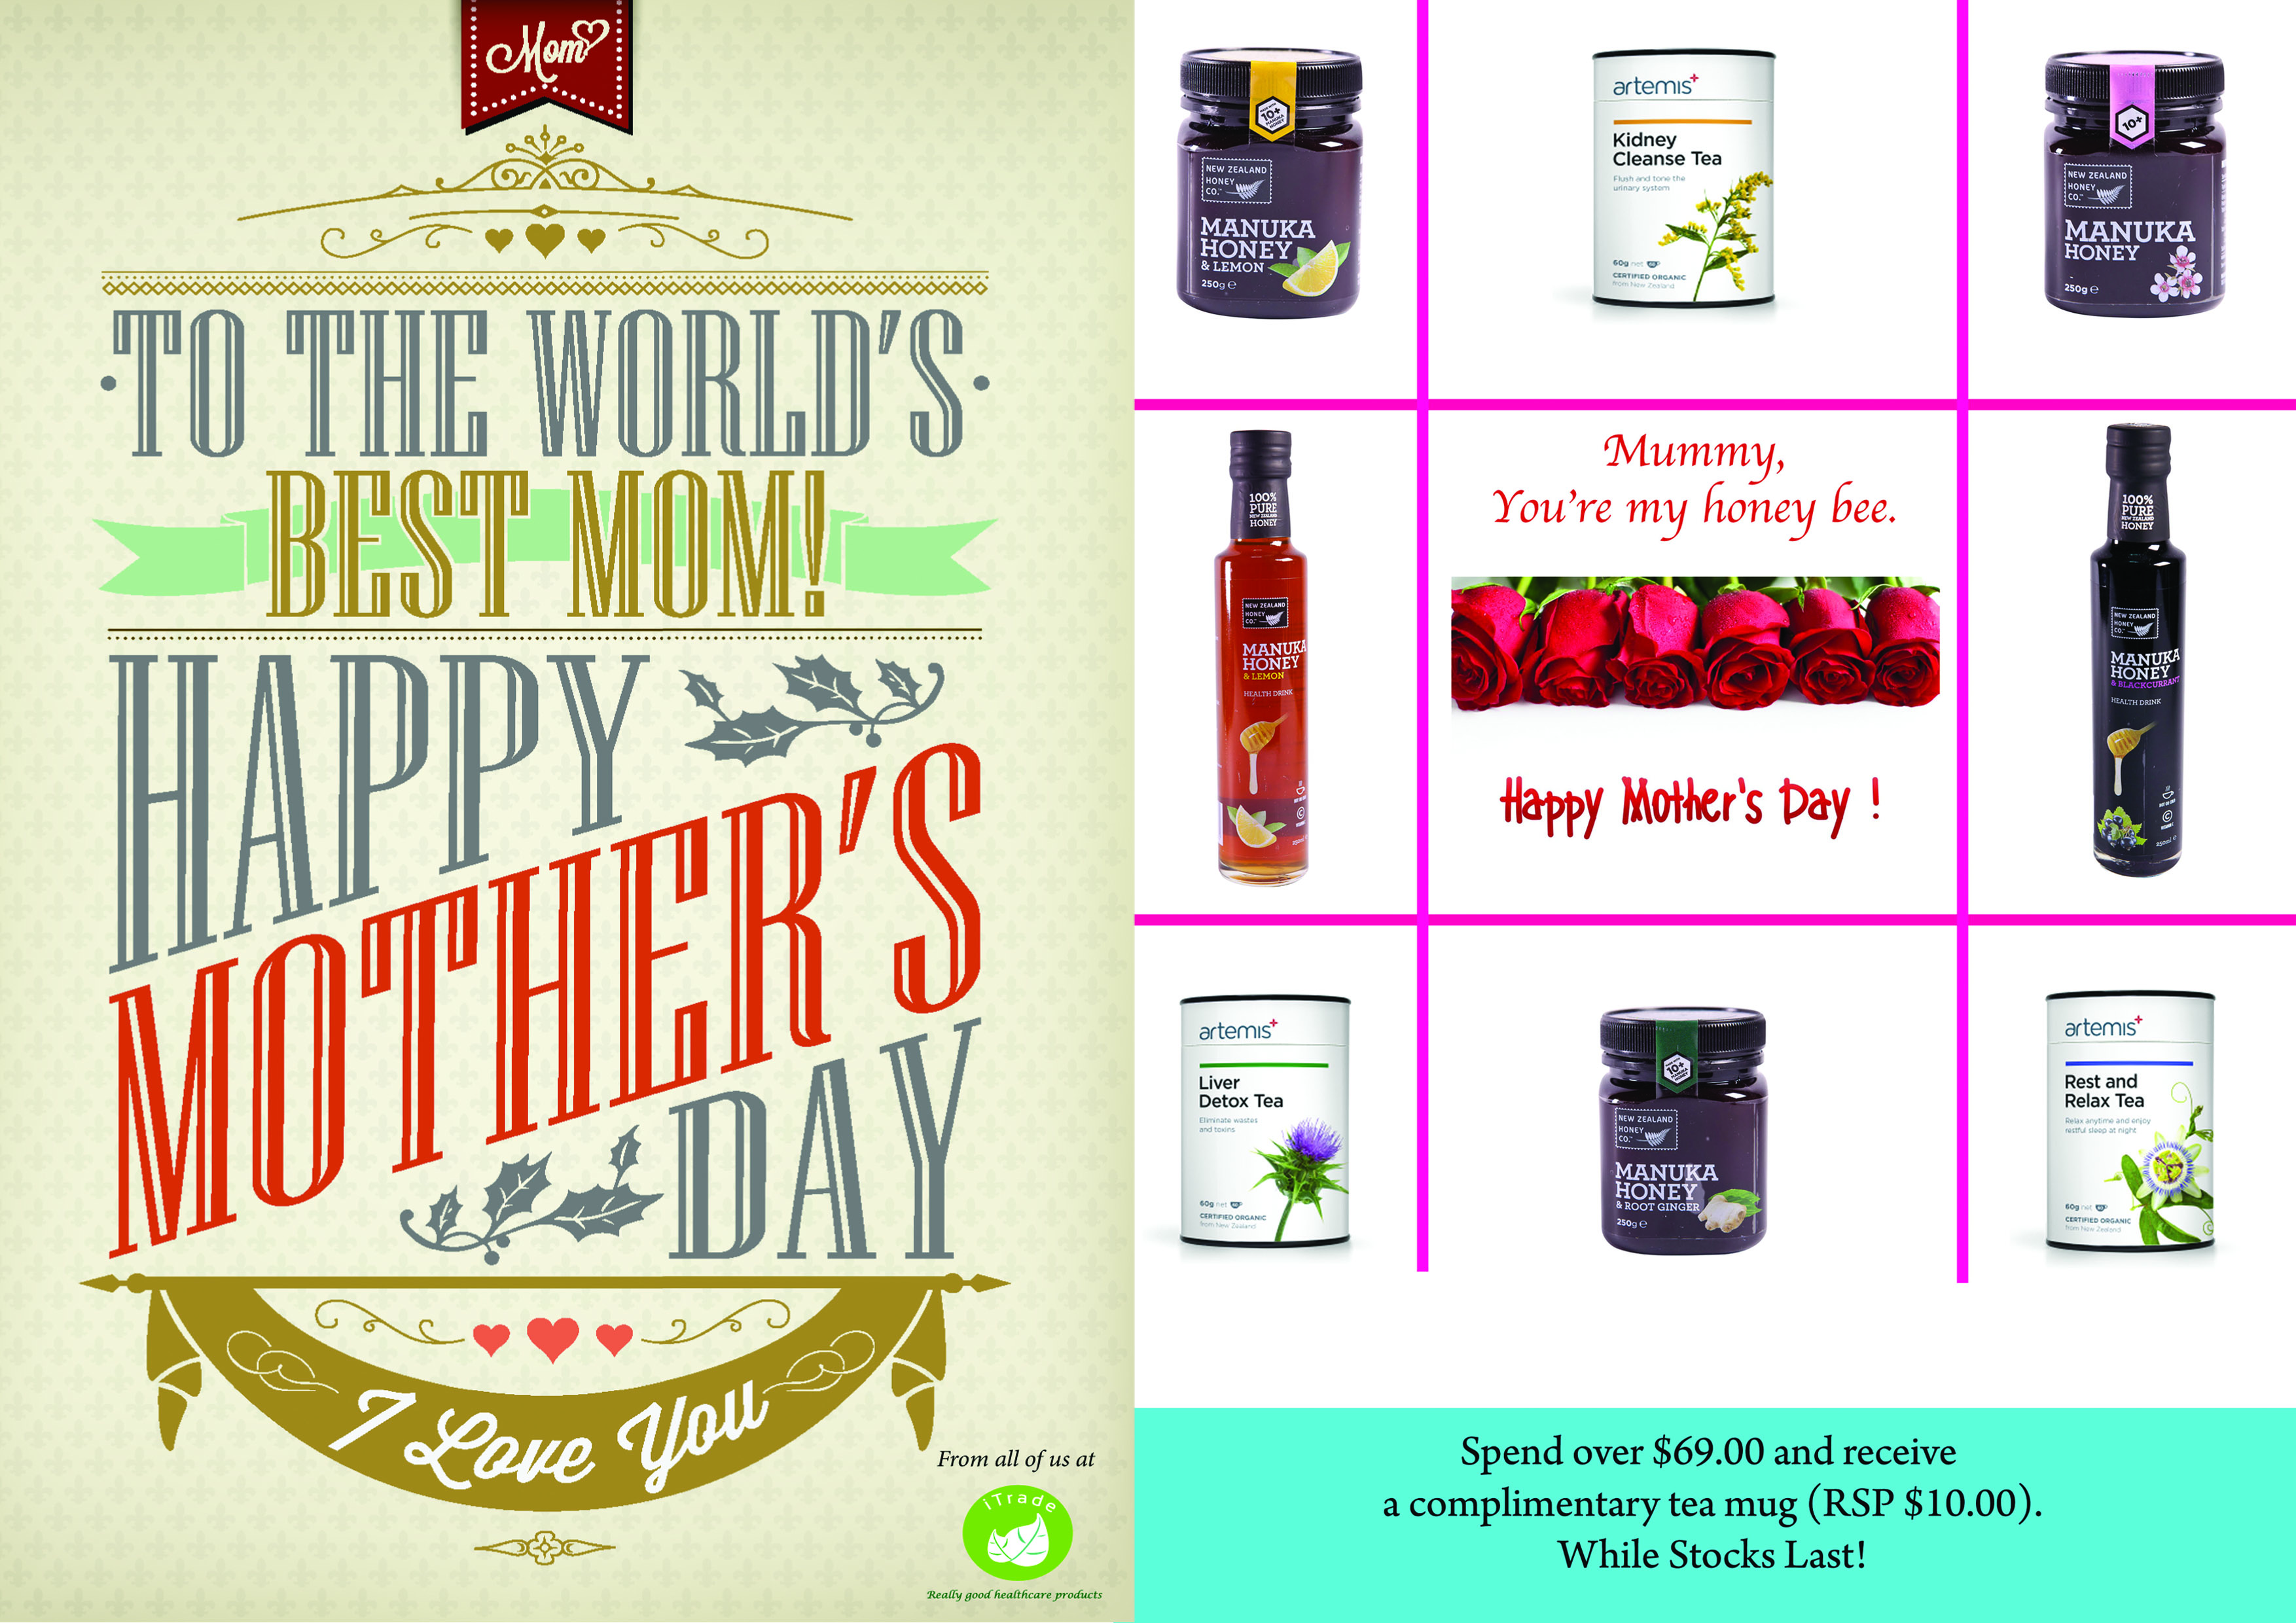 -SEASONAL SPECIAL- It's the season to celebrate Mother's Day! Specially themed for your special lady: Delight her with our award winning New Zealand honey & Co Products and New Zealand Artemis Organic Herbal Tea series. Spend $69.00 and above to receive a complimentary mug! Promotion is valid from now to May 10th, 2015. From all of us at iTrade Healthcare Pte Ltd, Happy Mother's day in advance!